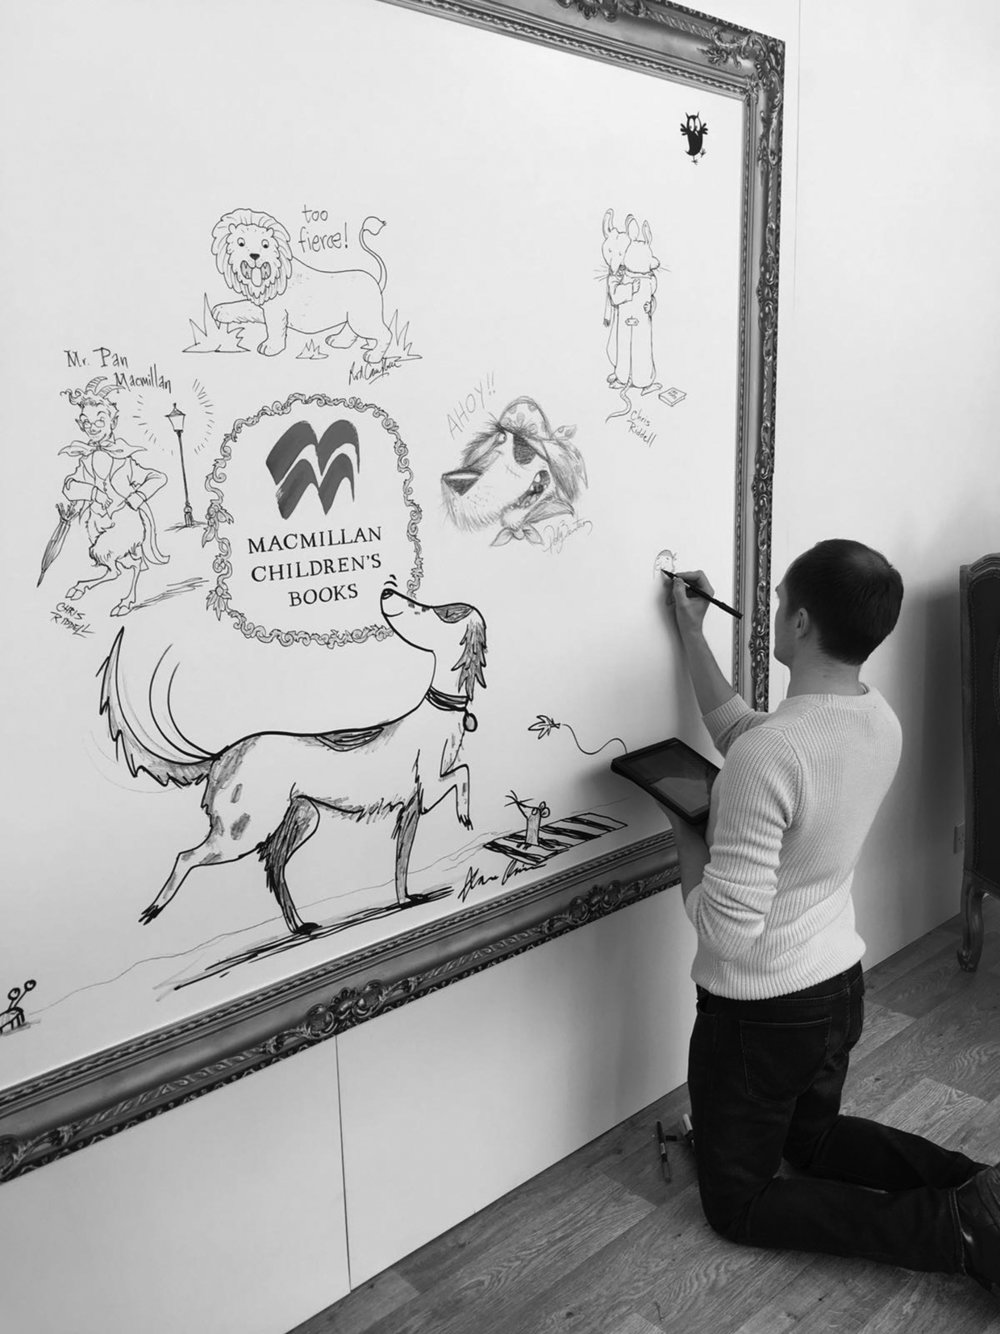 Drawing on the Macmillan stand at the Bologna Children's Book Fair 2017